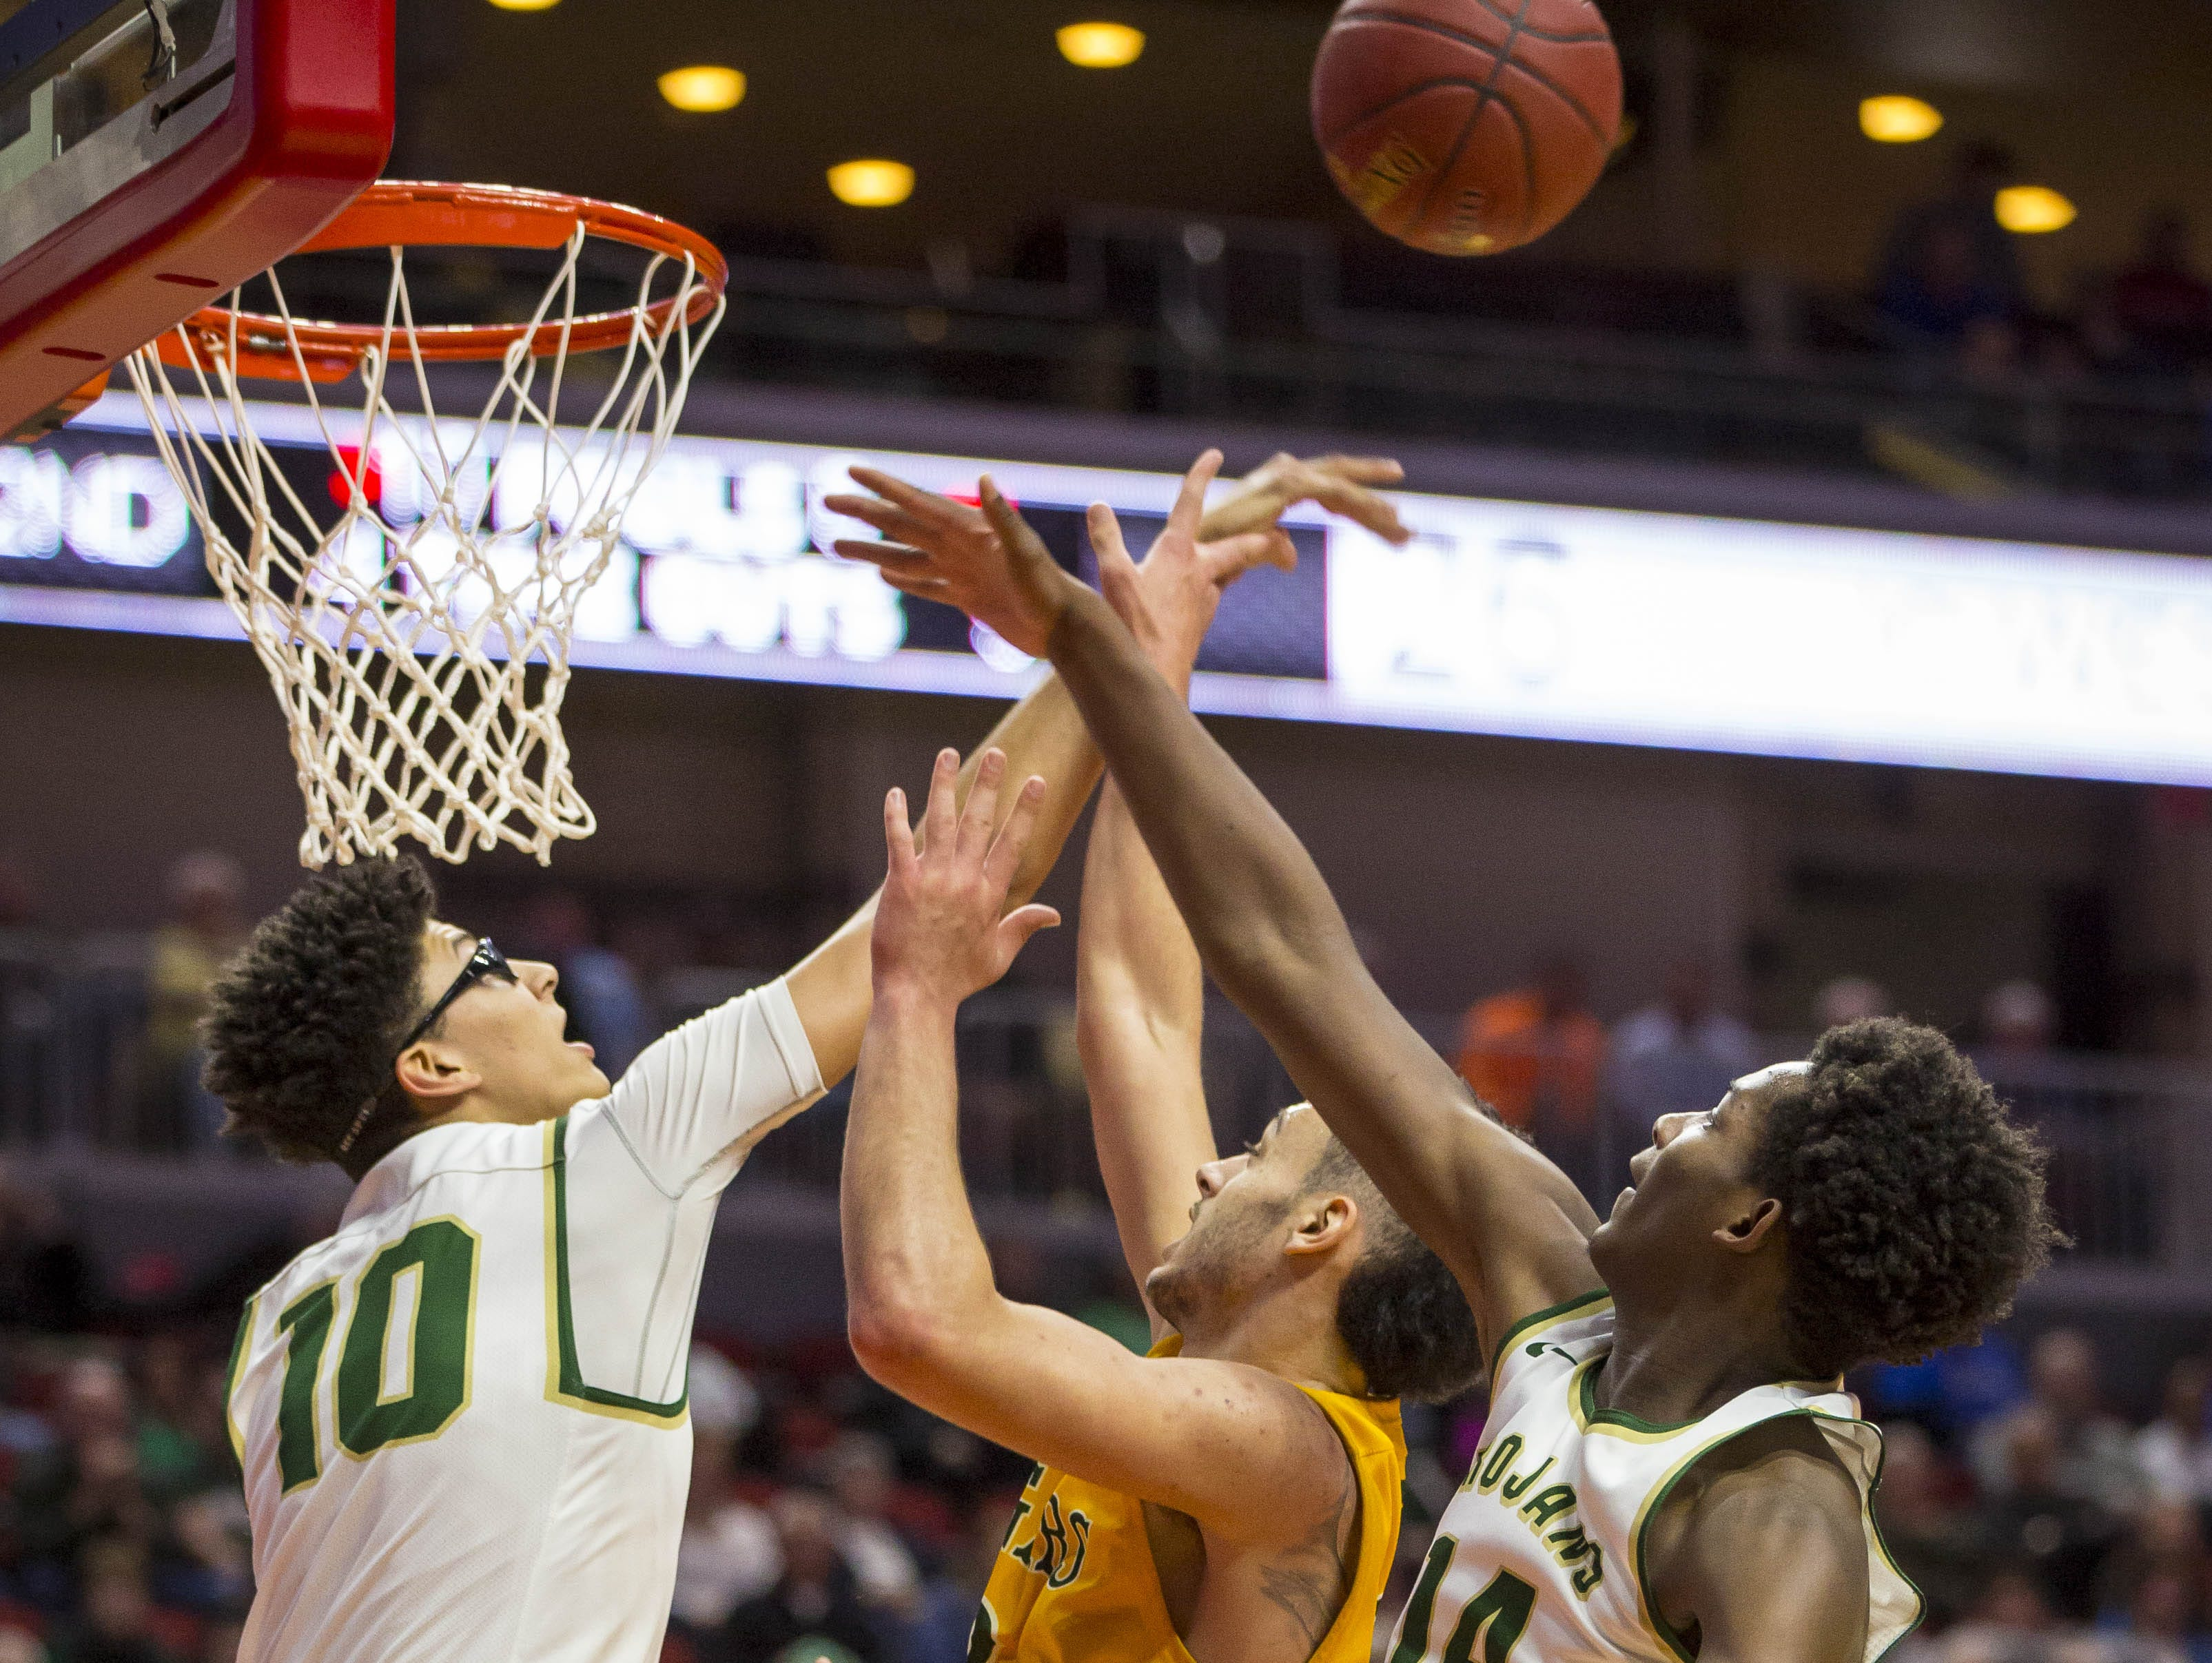 Iowa City West High's Seybian Sims (10) and Hakeem Odunsi block a shot by Cedar Rapids Kennedy's Drake Brewster during their Class 4A semifinal at the Iowa boys' high school basketball tournament Friday at Wells Fargo Arena in Des Moines.